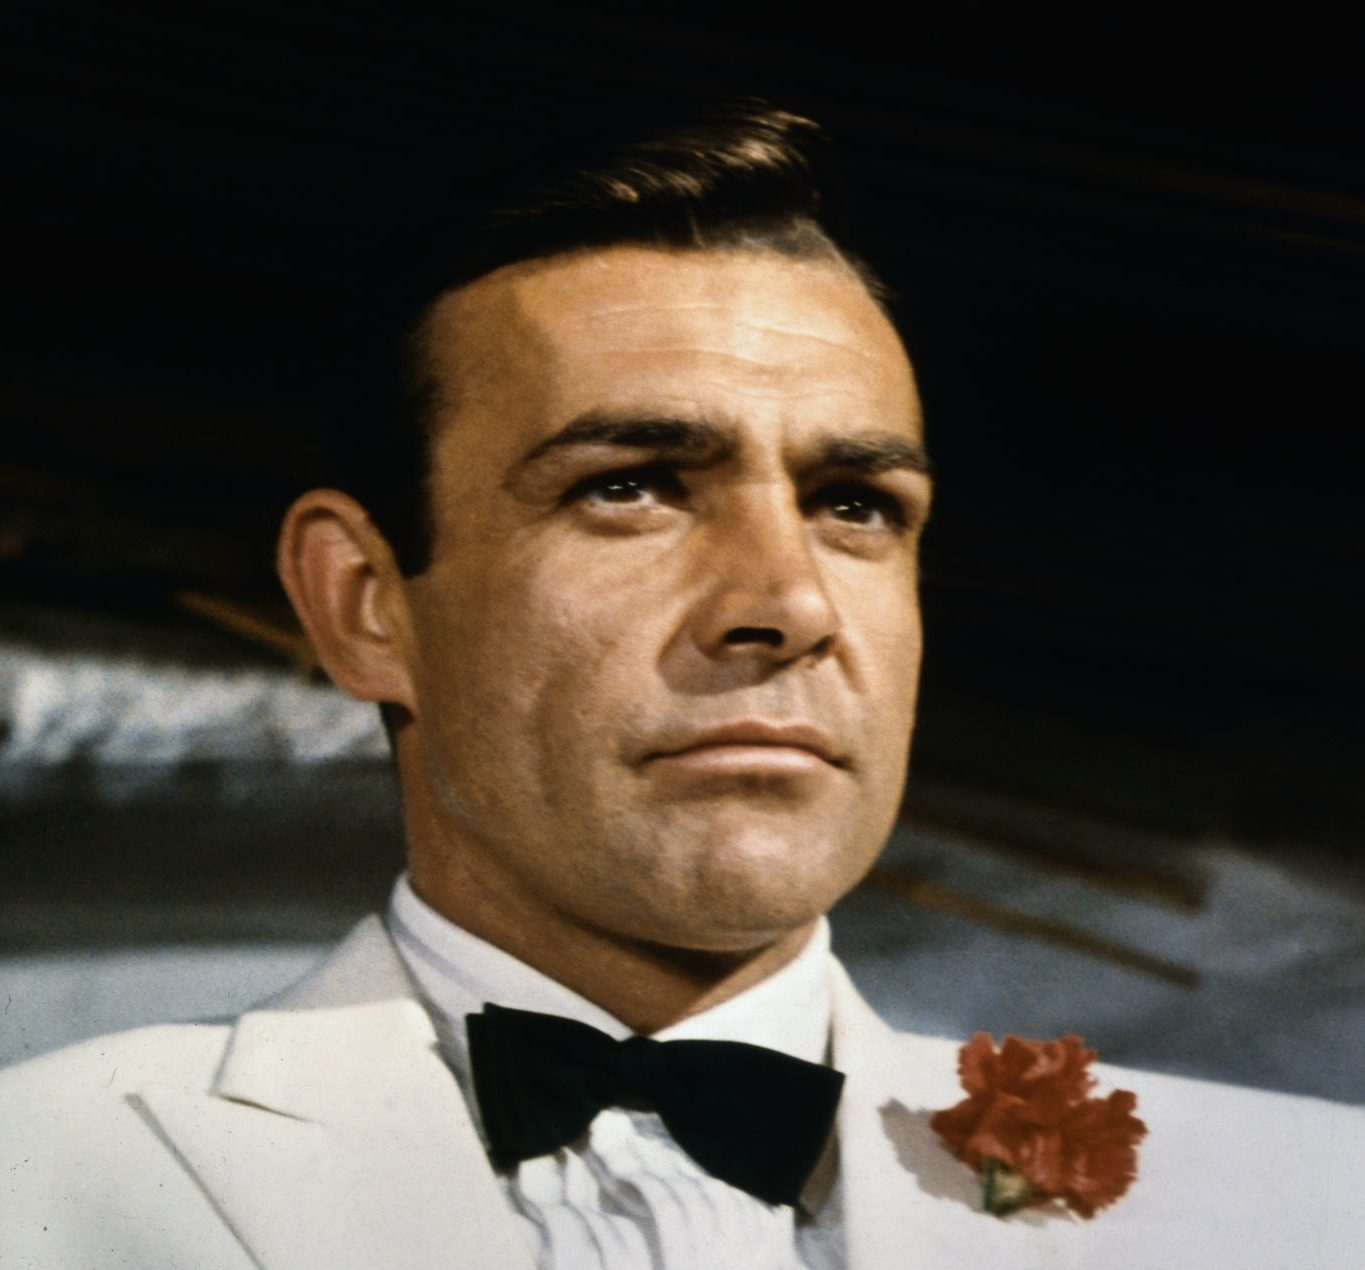 Sean Connery Bond e1604327907858 20 Things You Never Knew About Sean Connery